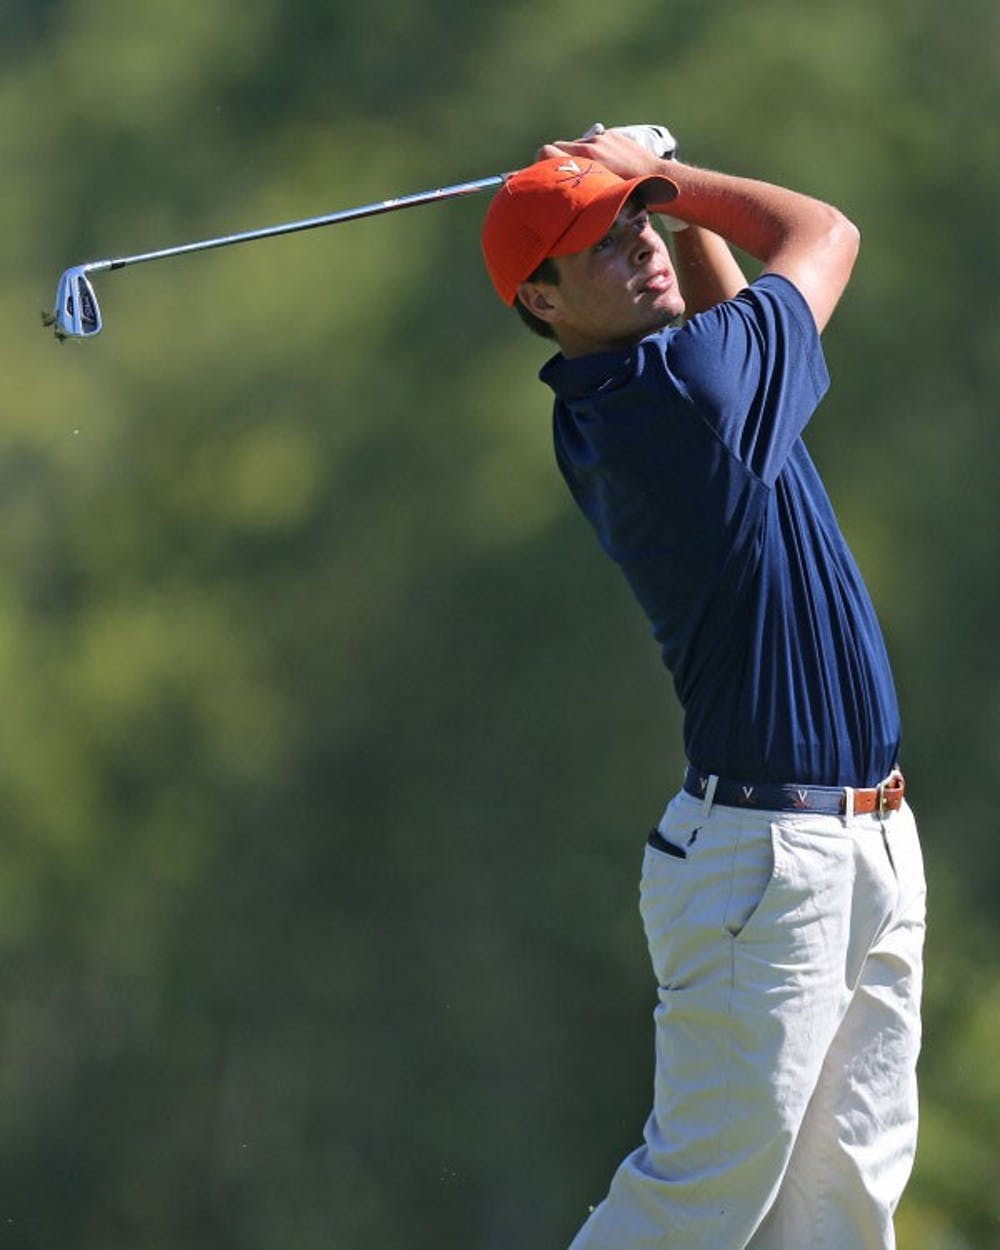 <p>Sophomore Derek Bard's 15-under 201 was the third-lowest 54-hole score in the history of Virginia men's golf. Bard also tied a program record for lowest 18-hole score in Friday's opening round, shooting 9-under 63.</p>